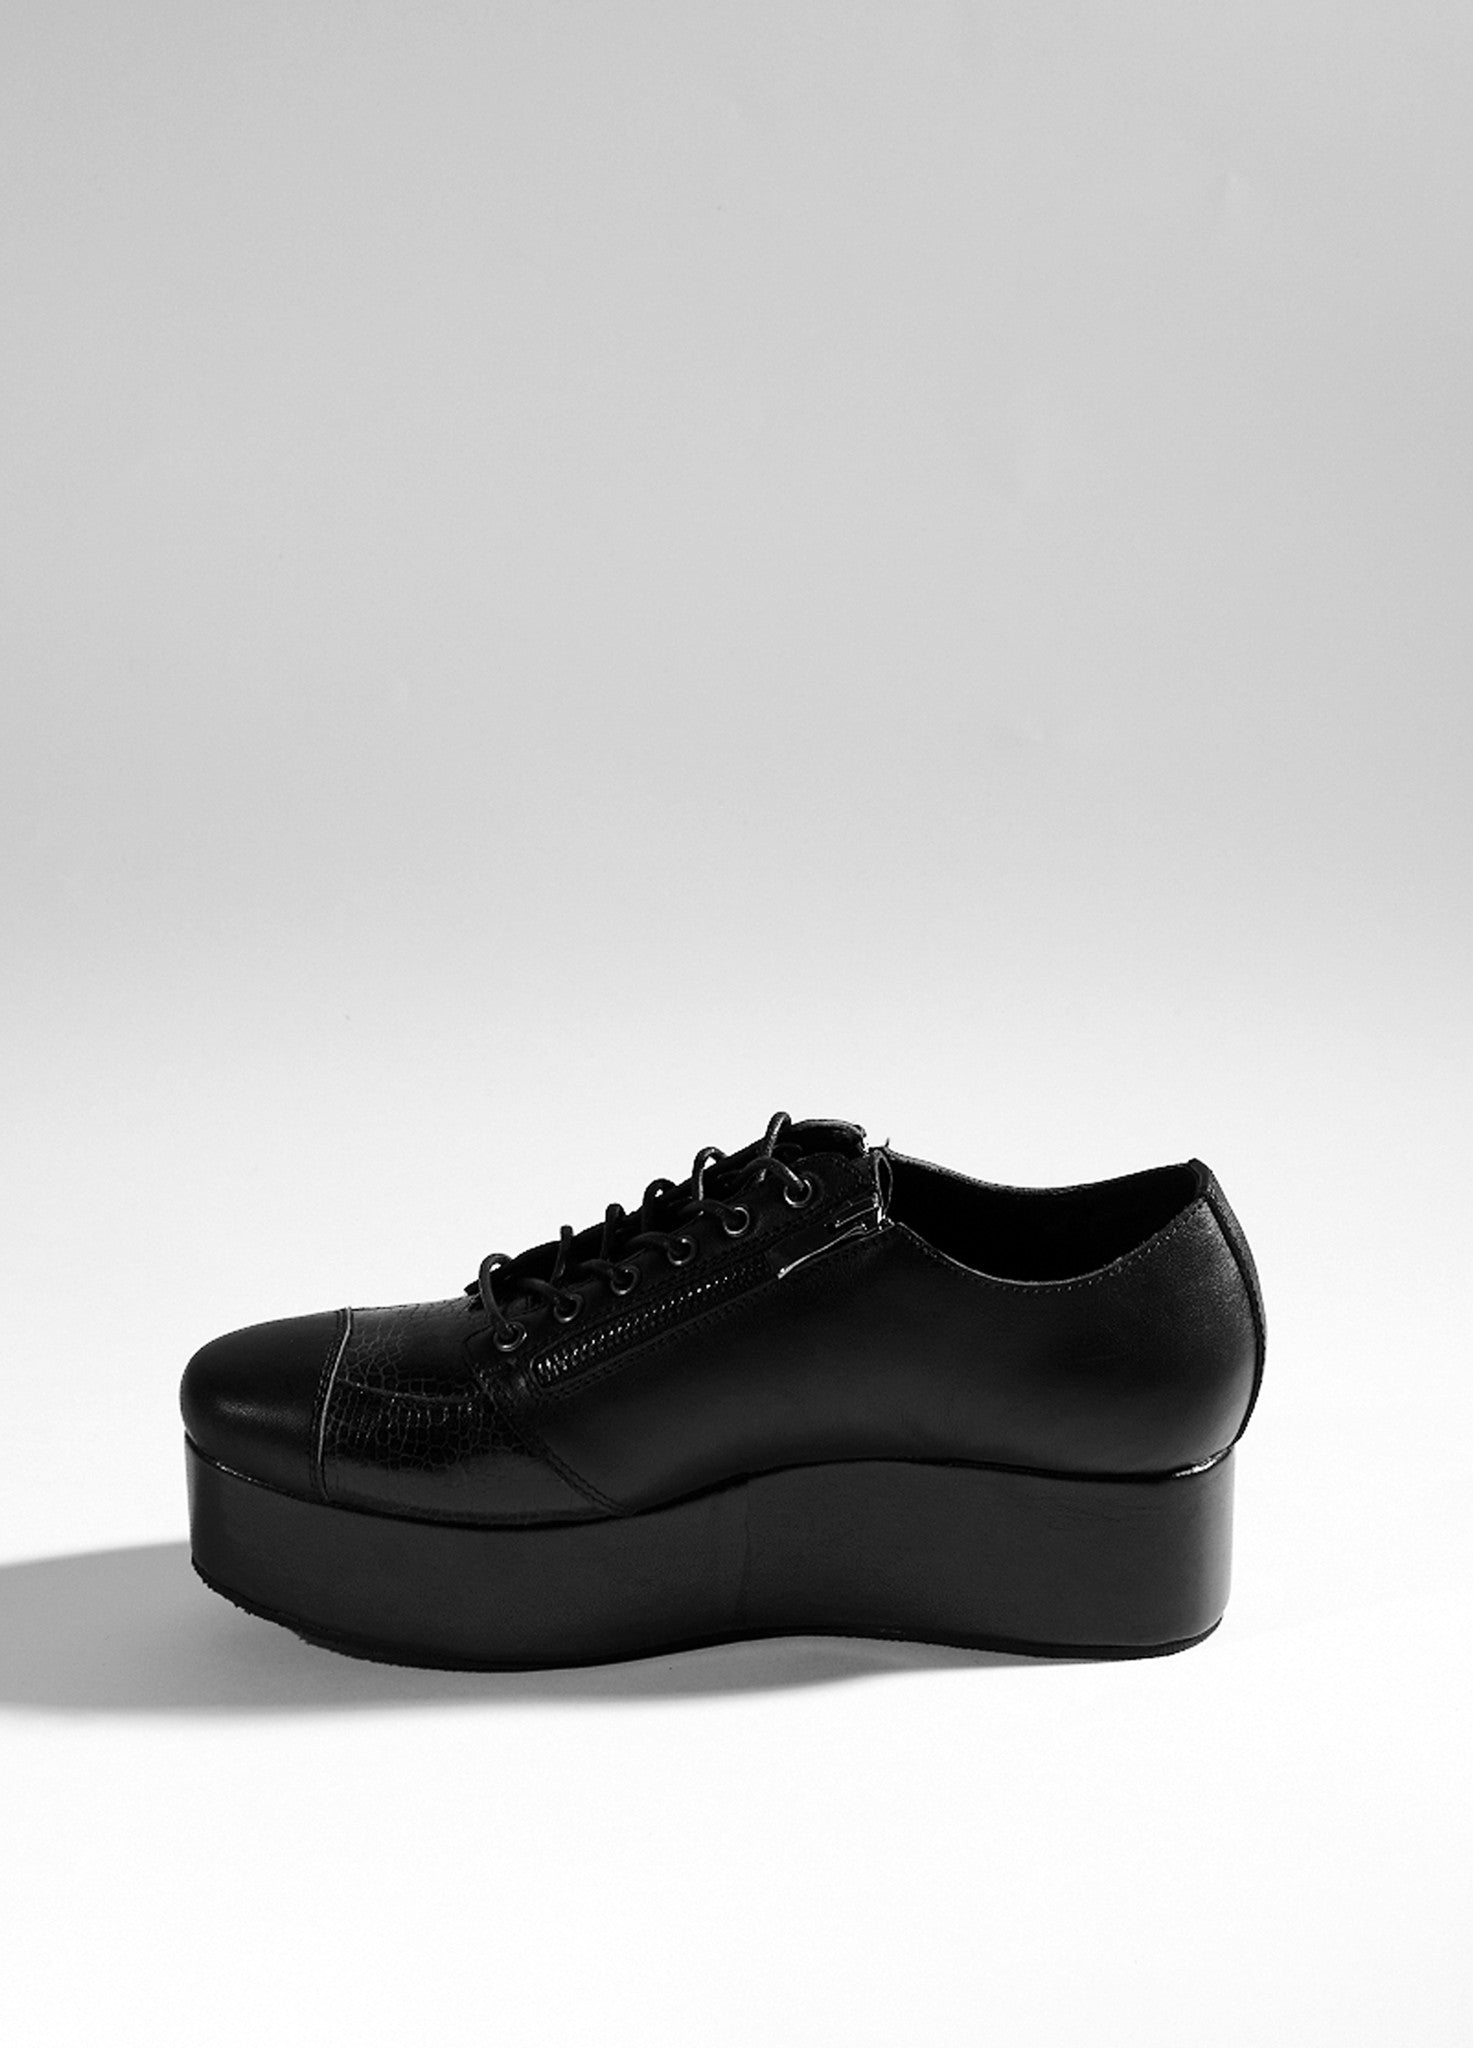 Dual Zip Creepers